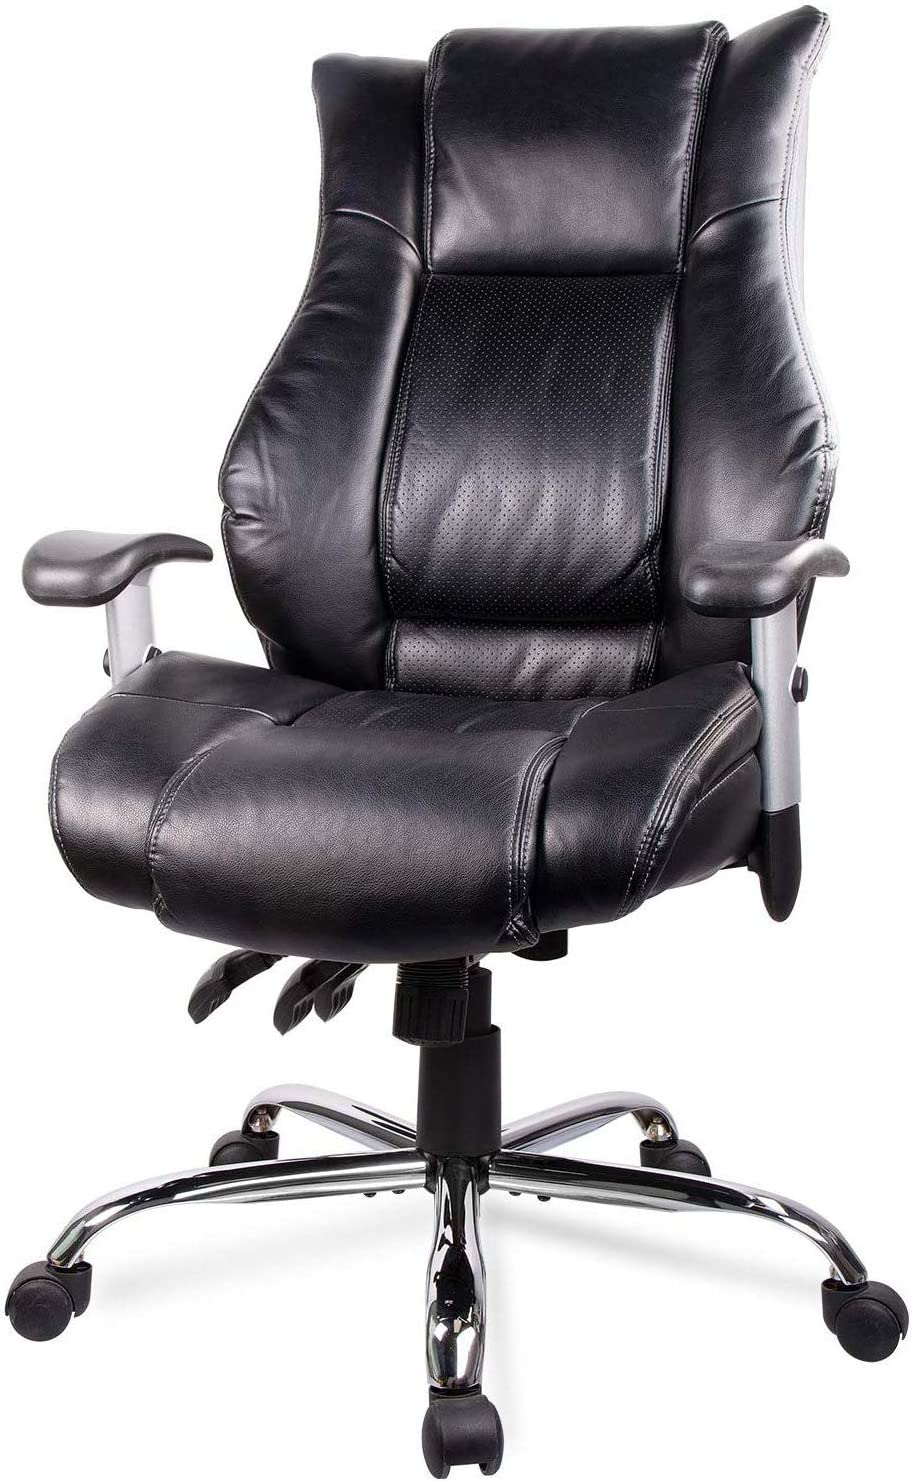 Smugdesk High Back Bonded Leather Executive Office Chair with Adjustable Backrest and Armrest, Black